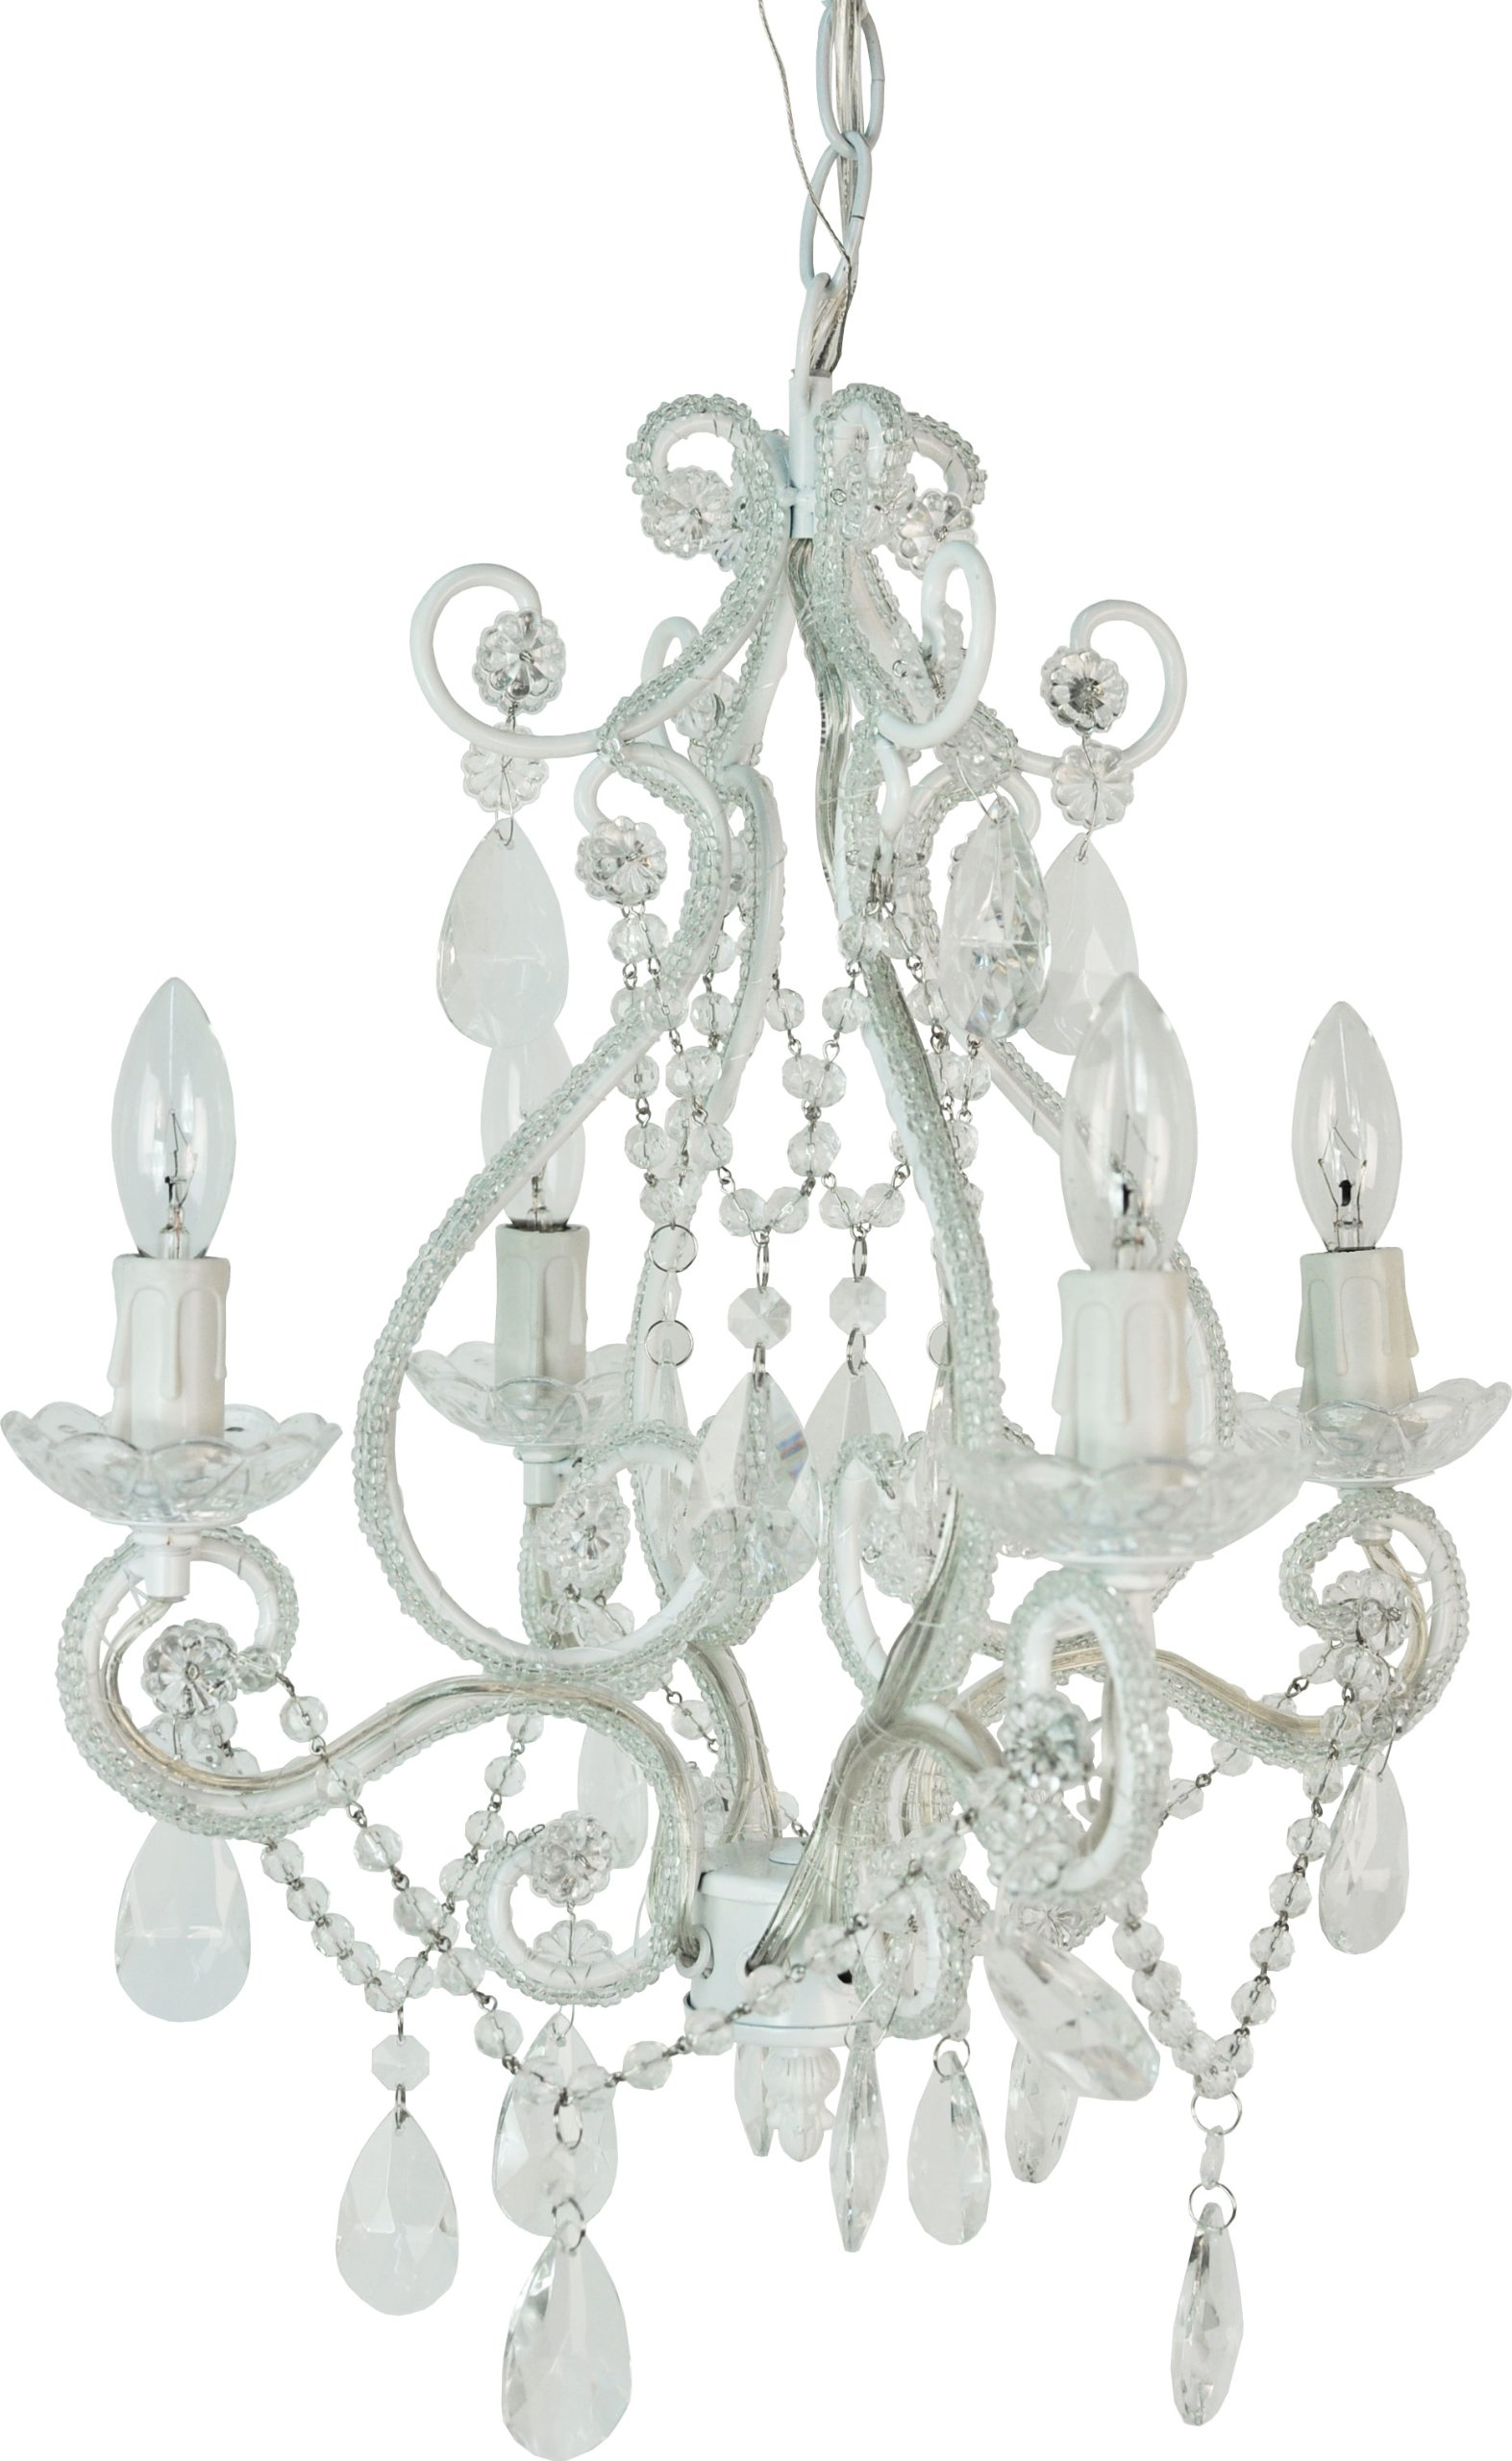 Tadpoles 4-Bulb Vintage Plug-In or Hardwired Mini-Chandelier, White Diamond by Tadpoles (Image #2)